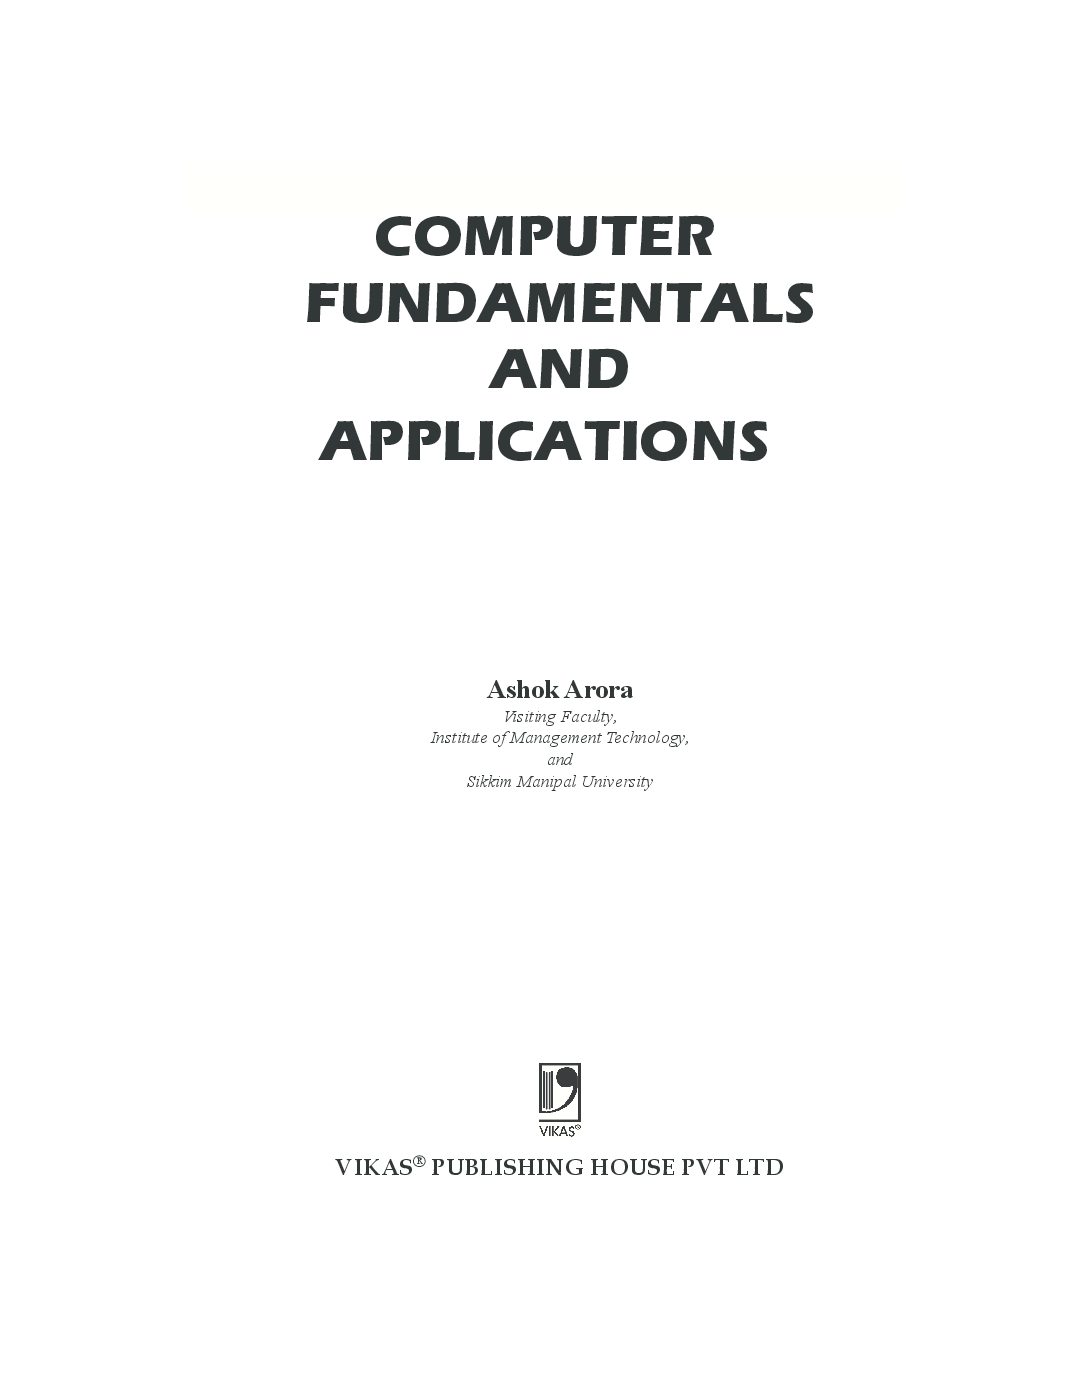 Download Computer Fundamentals And Applications by Ashok